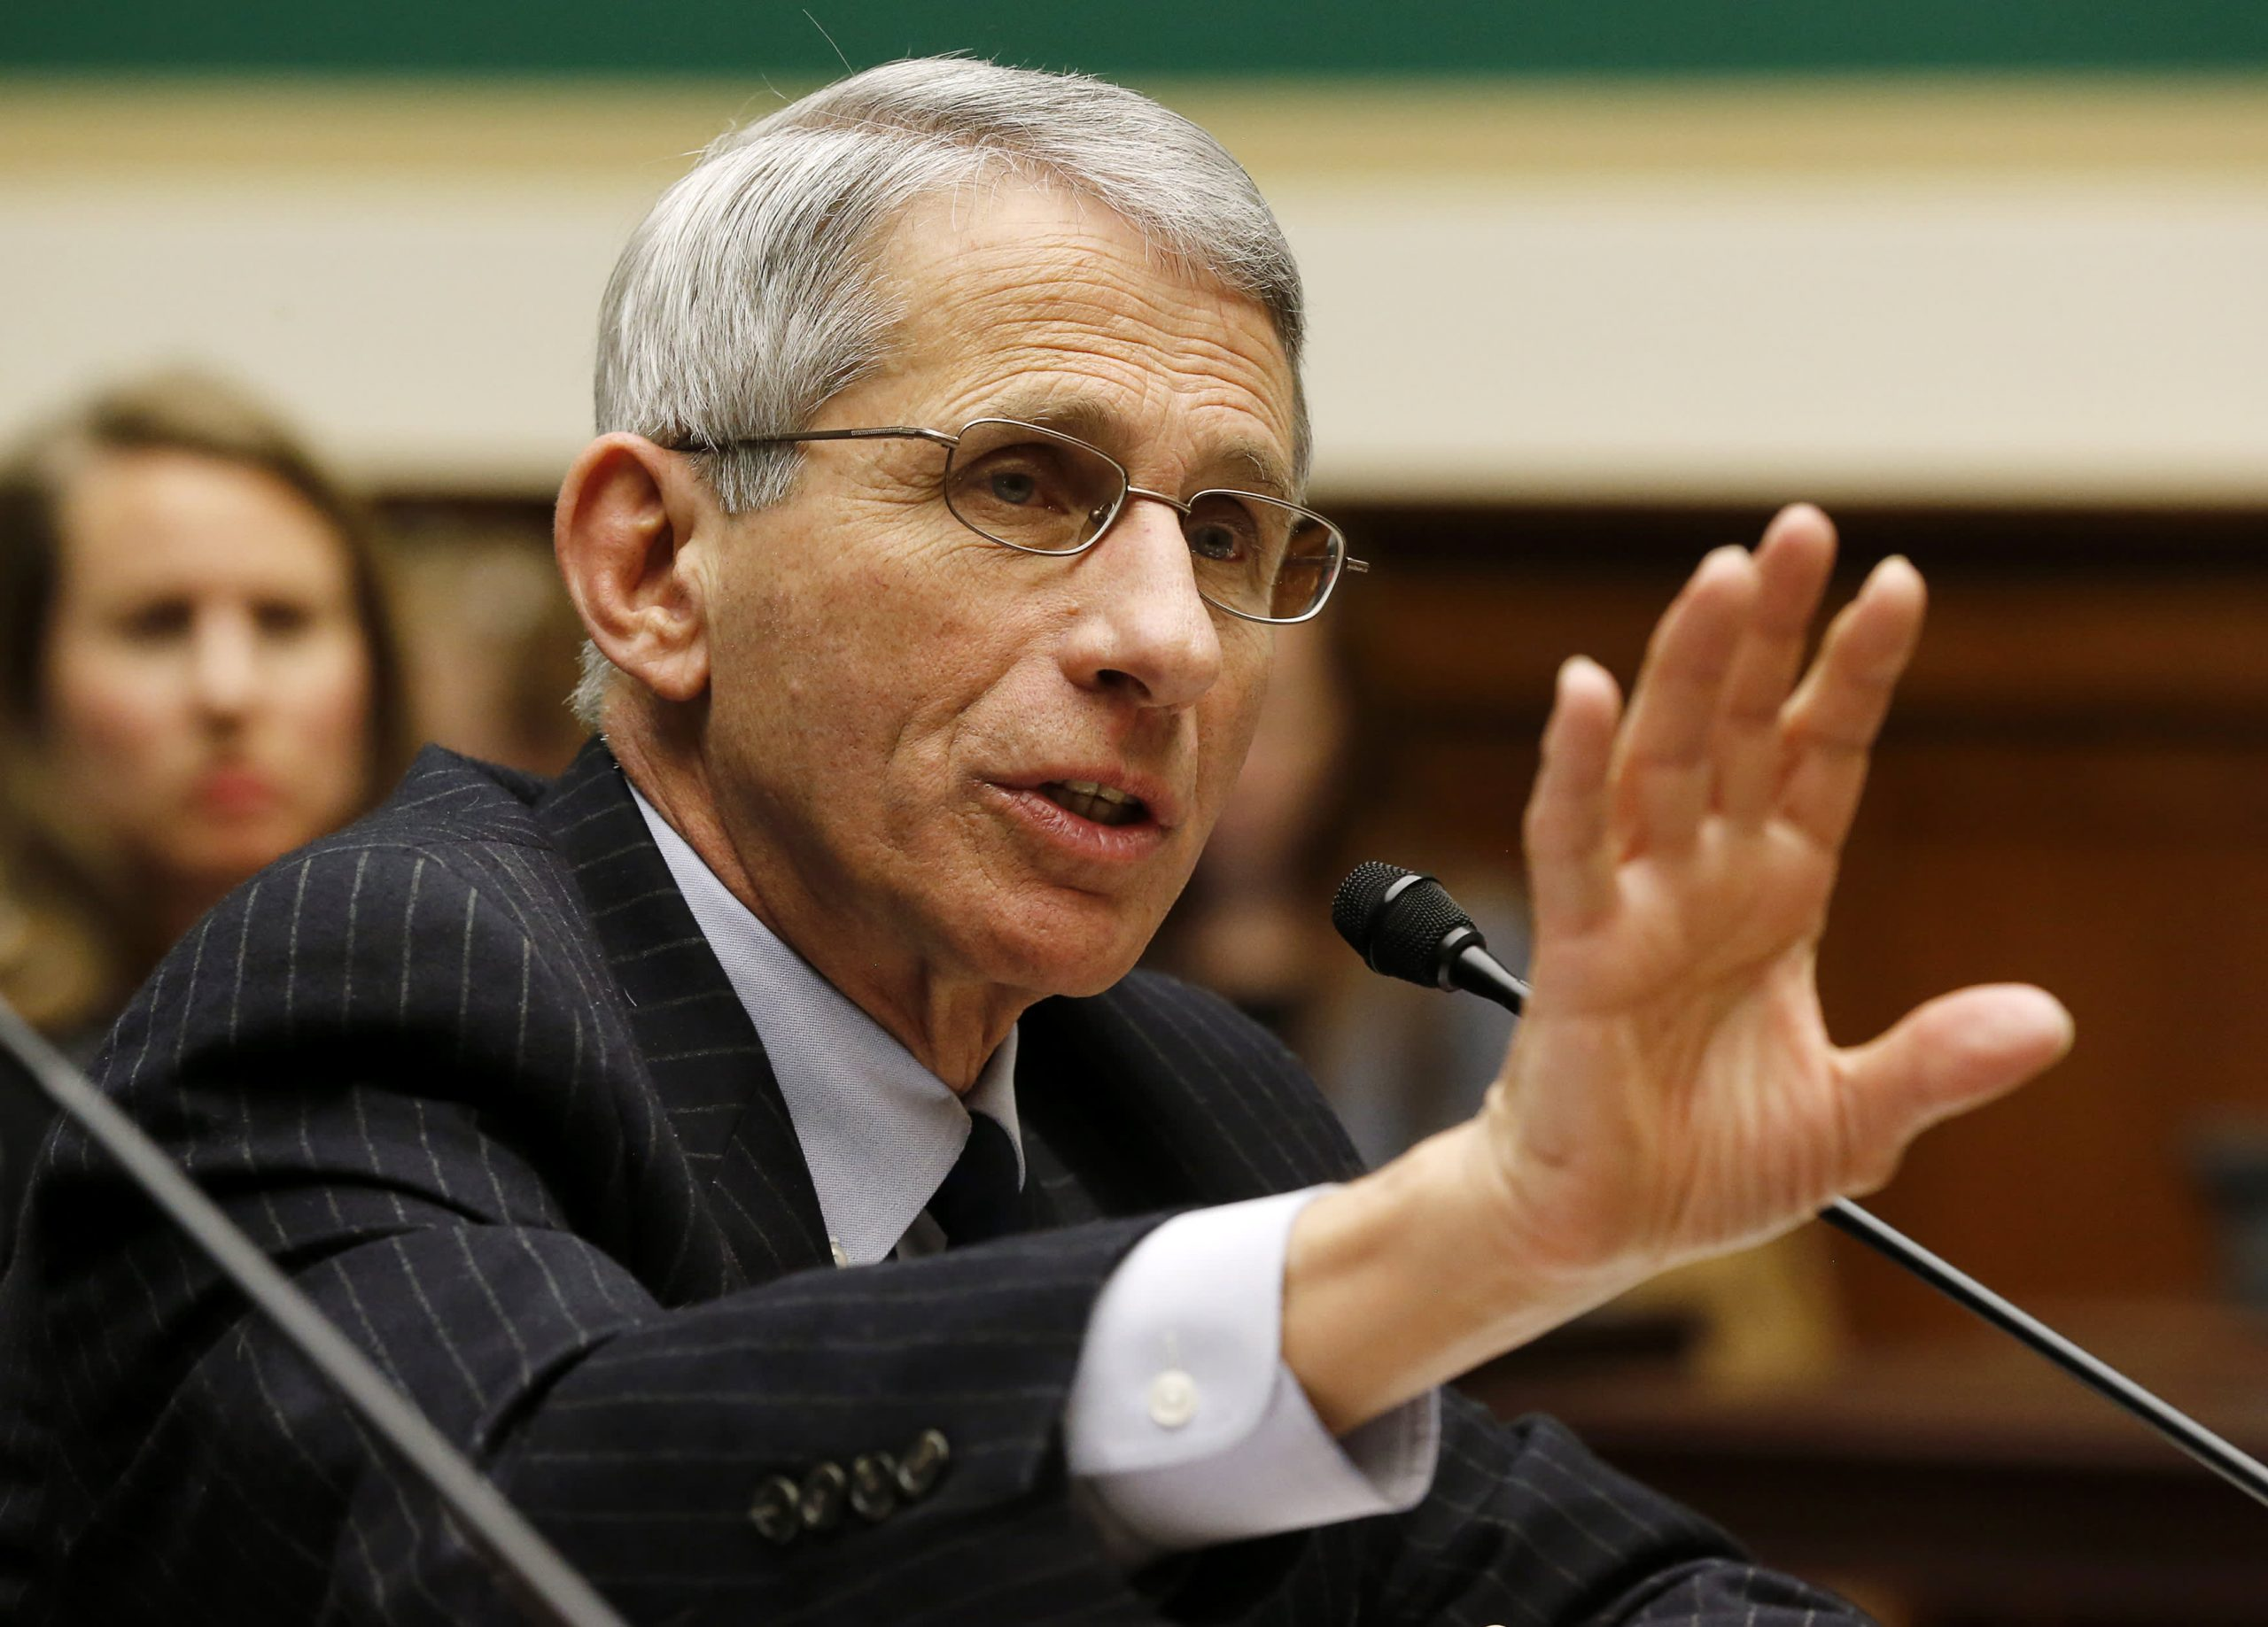 Fauci says U.S. is expanding Covid vaccine manufacturing to donate more doses to the world